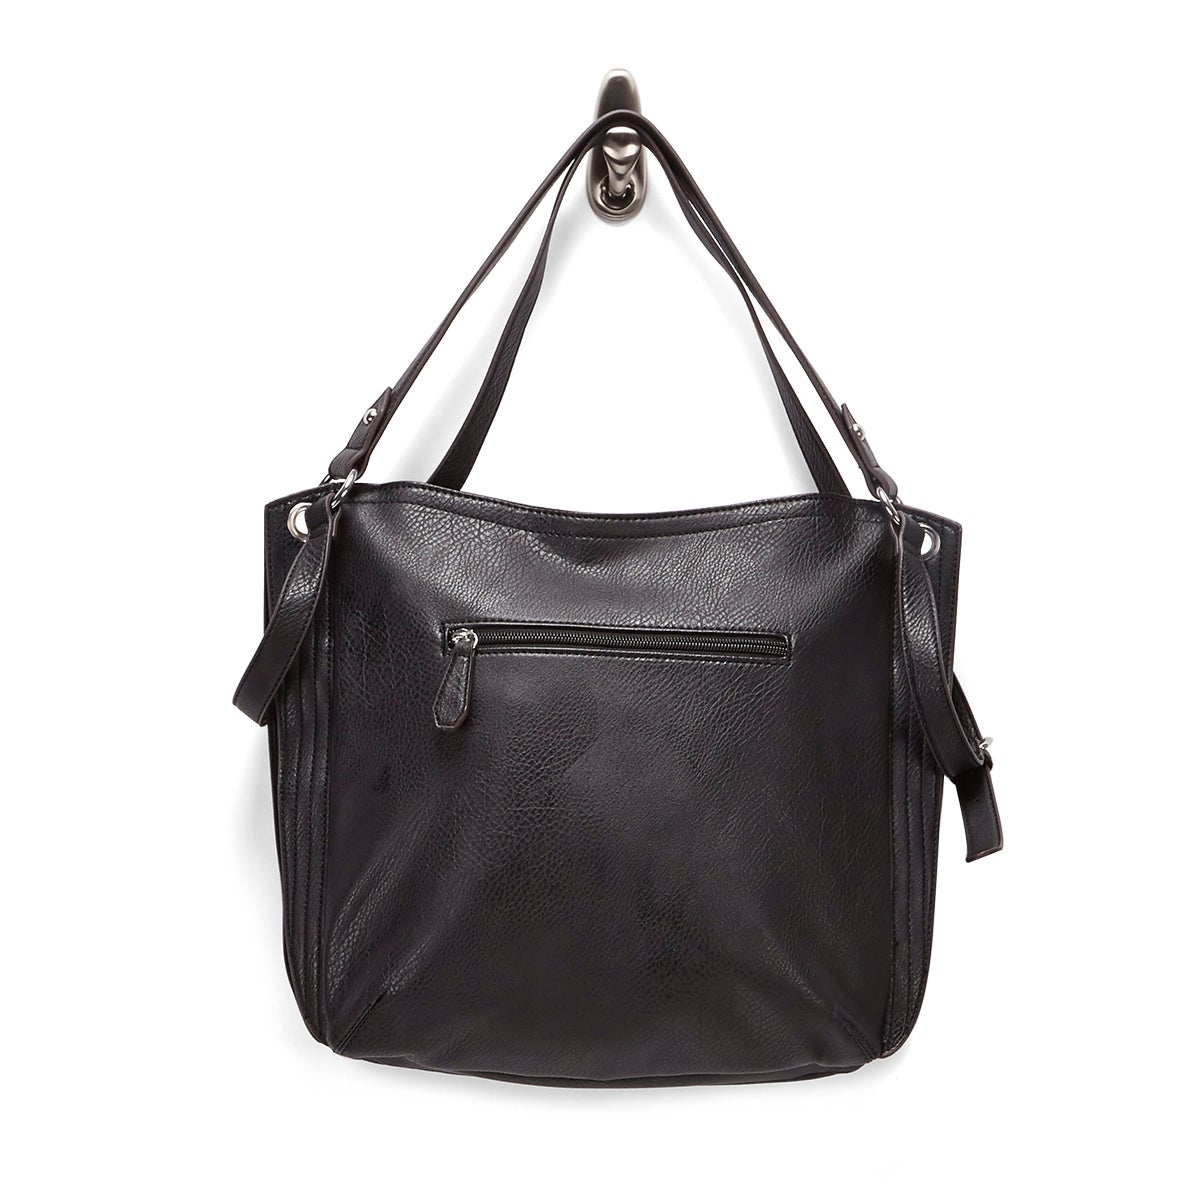 Lds Arabel black convert. bucket bag